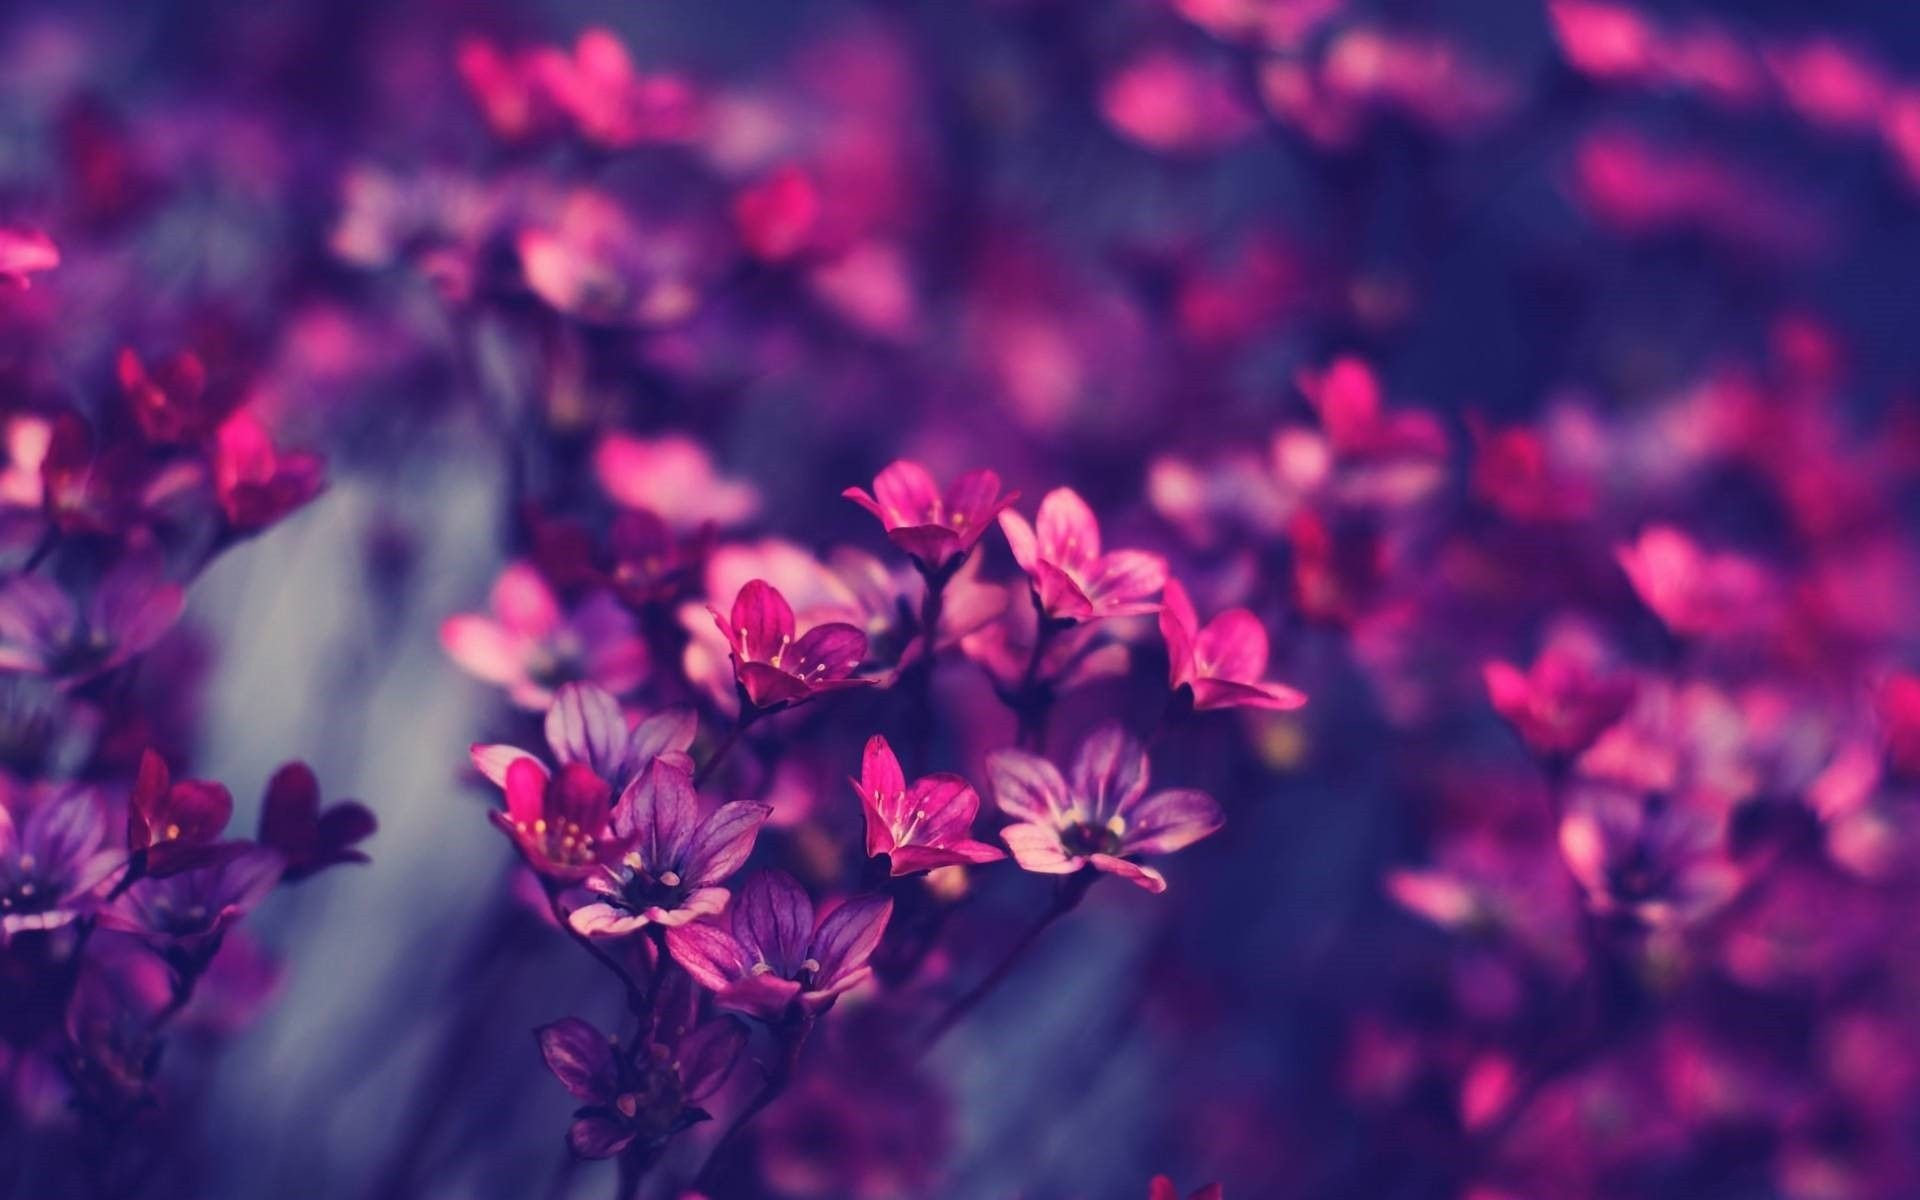 Pretty Wallpapers Hd Tumblr Purple Flowers Wallpaper Hd Wallpapers For Laptop Funky Wallpaper